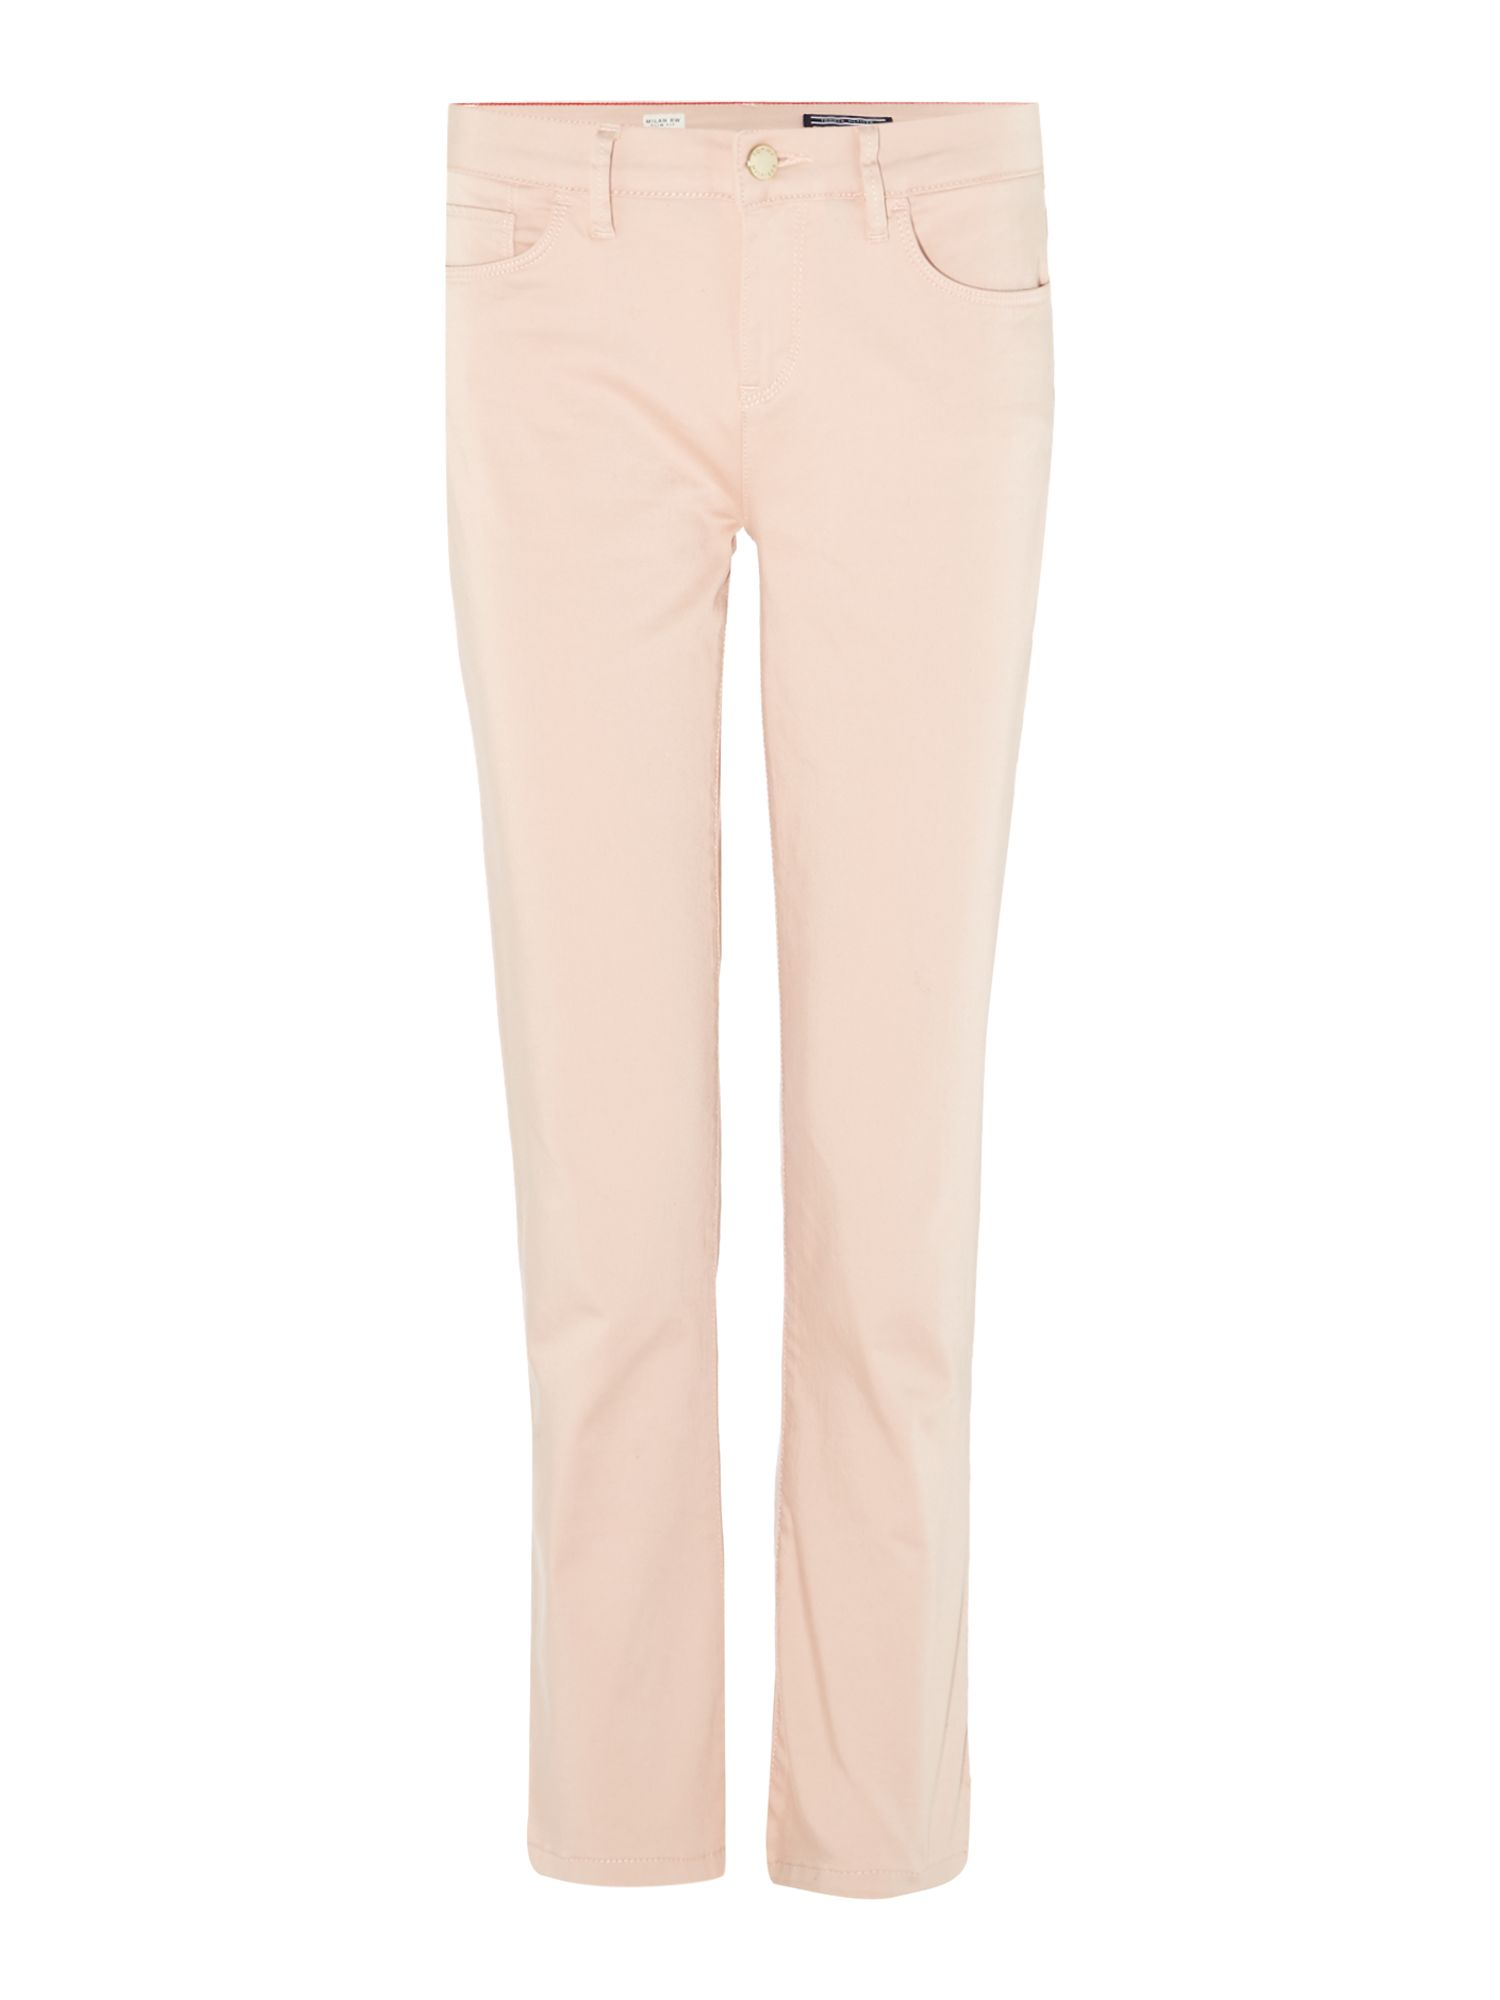 Tommy Hilfiger Silvana Milan Cropped Pants, Pink